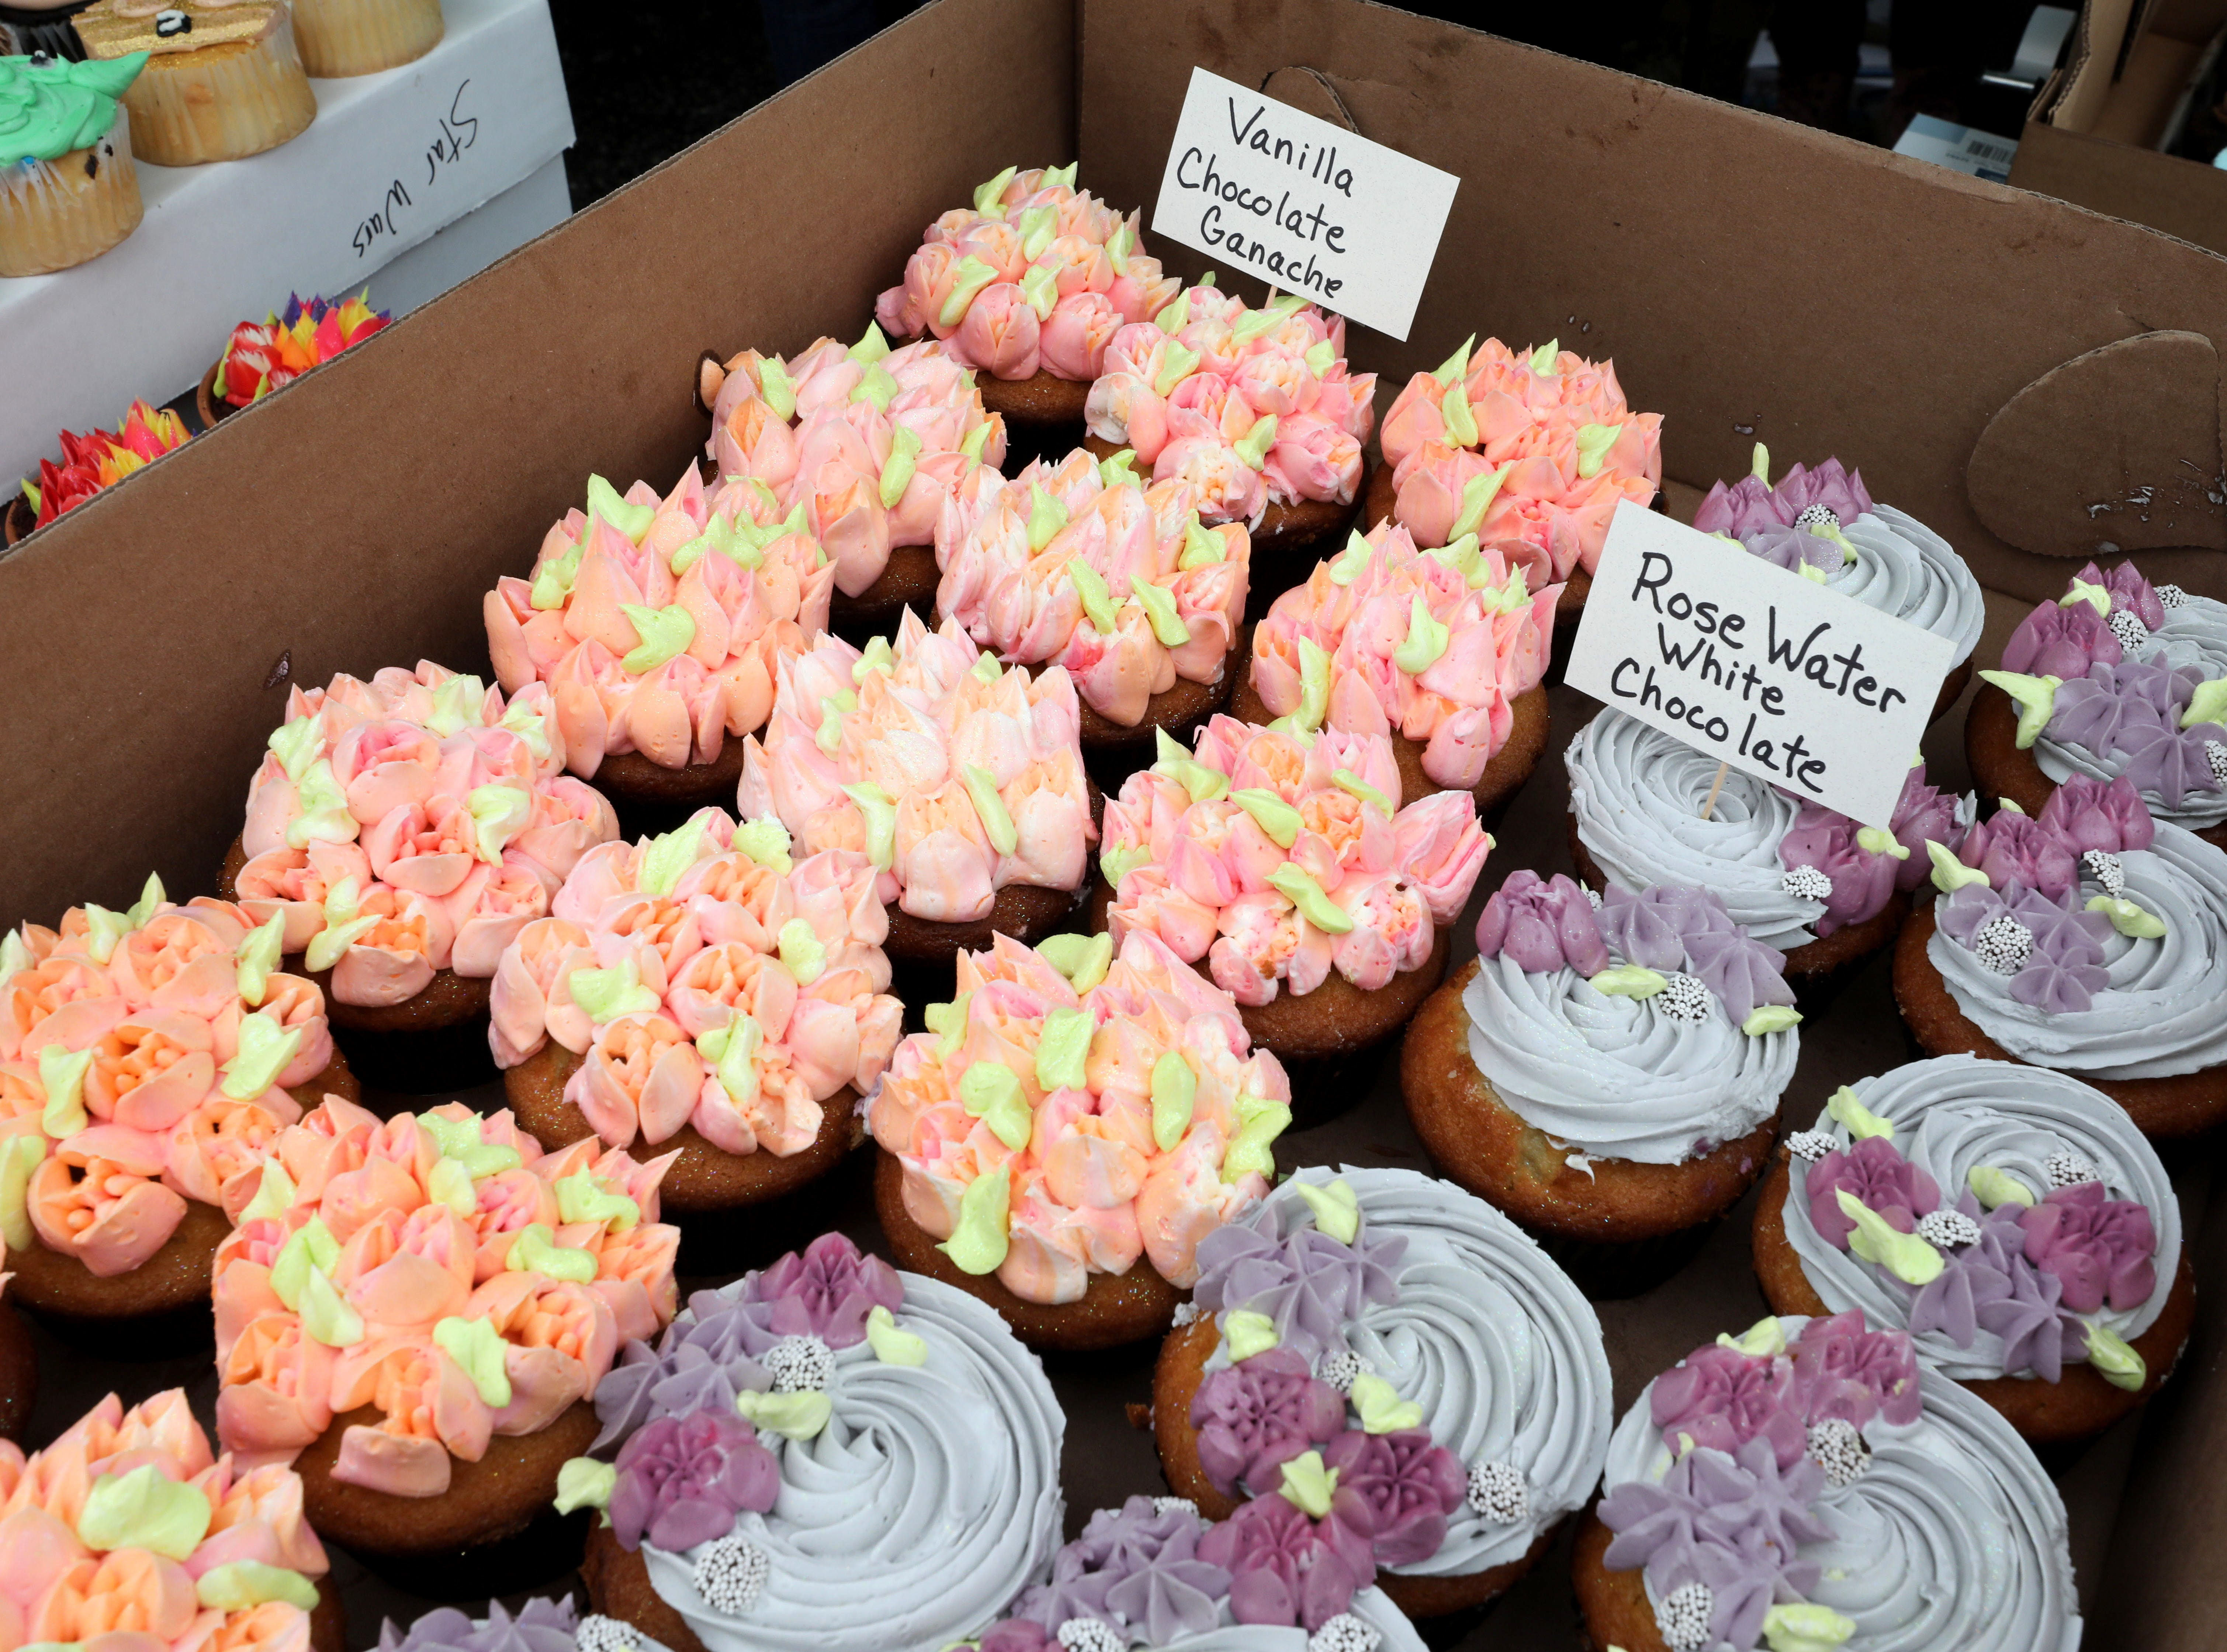 Beautifully decorated cupcakes from the Adam's Fairacre Farms booth are pictured during the K104.7 Cupcake Festival at the Stormville Airport, May 4, 2019.